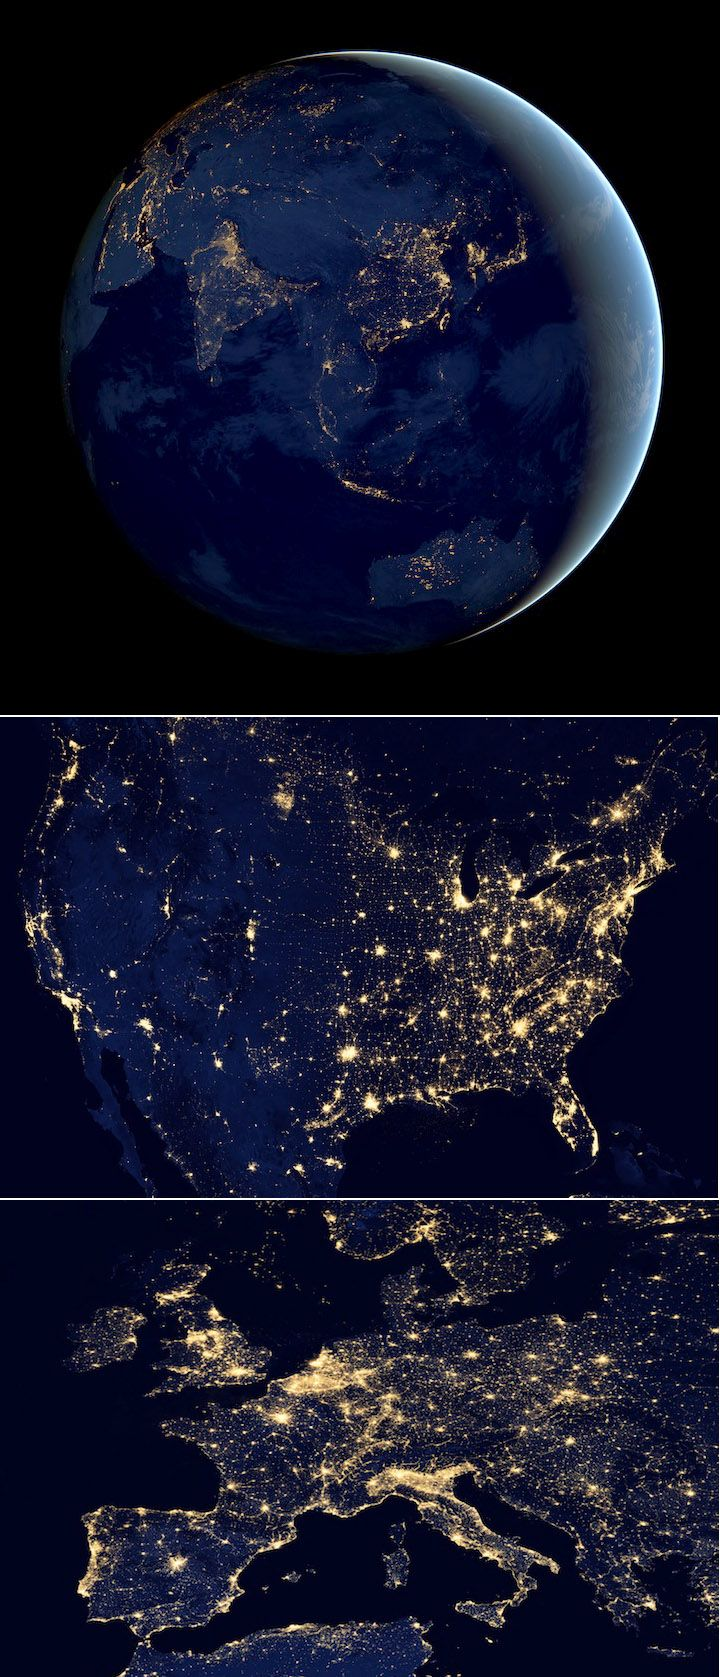 NASA Releases Stunning New Images Of The Earth At Night NASA - Beautiful video imagines cities without light pollution